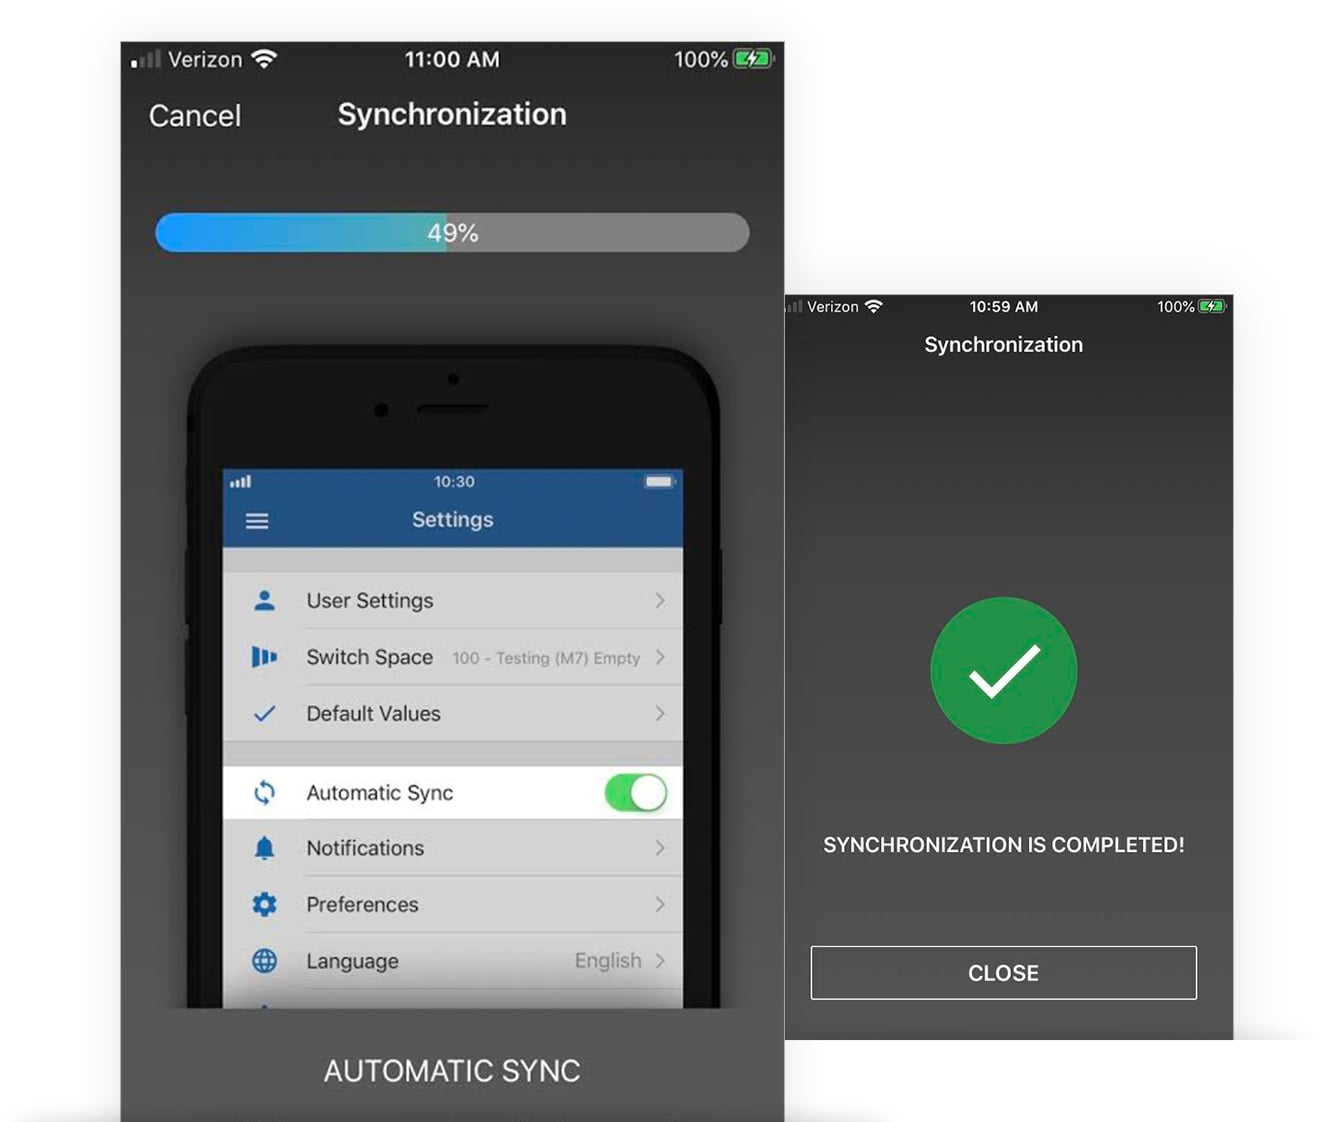 Mobile CRM automatic sync